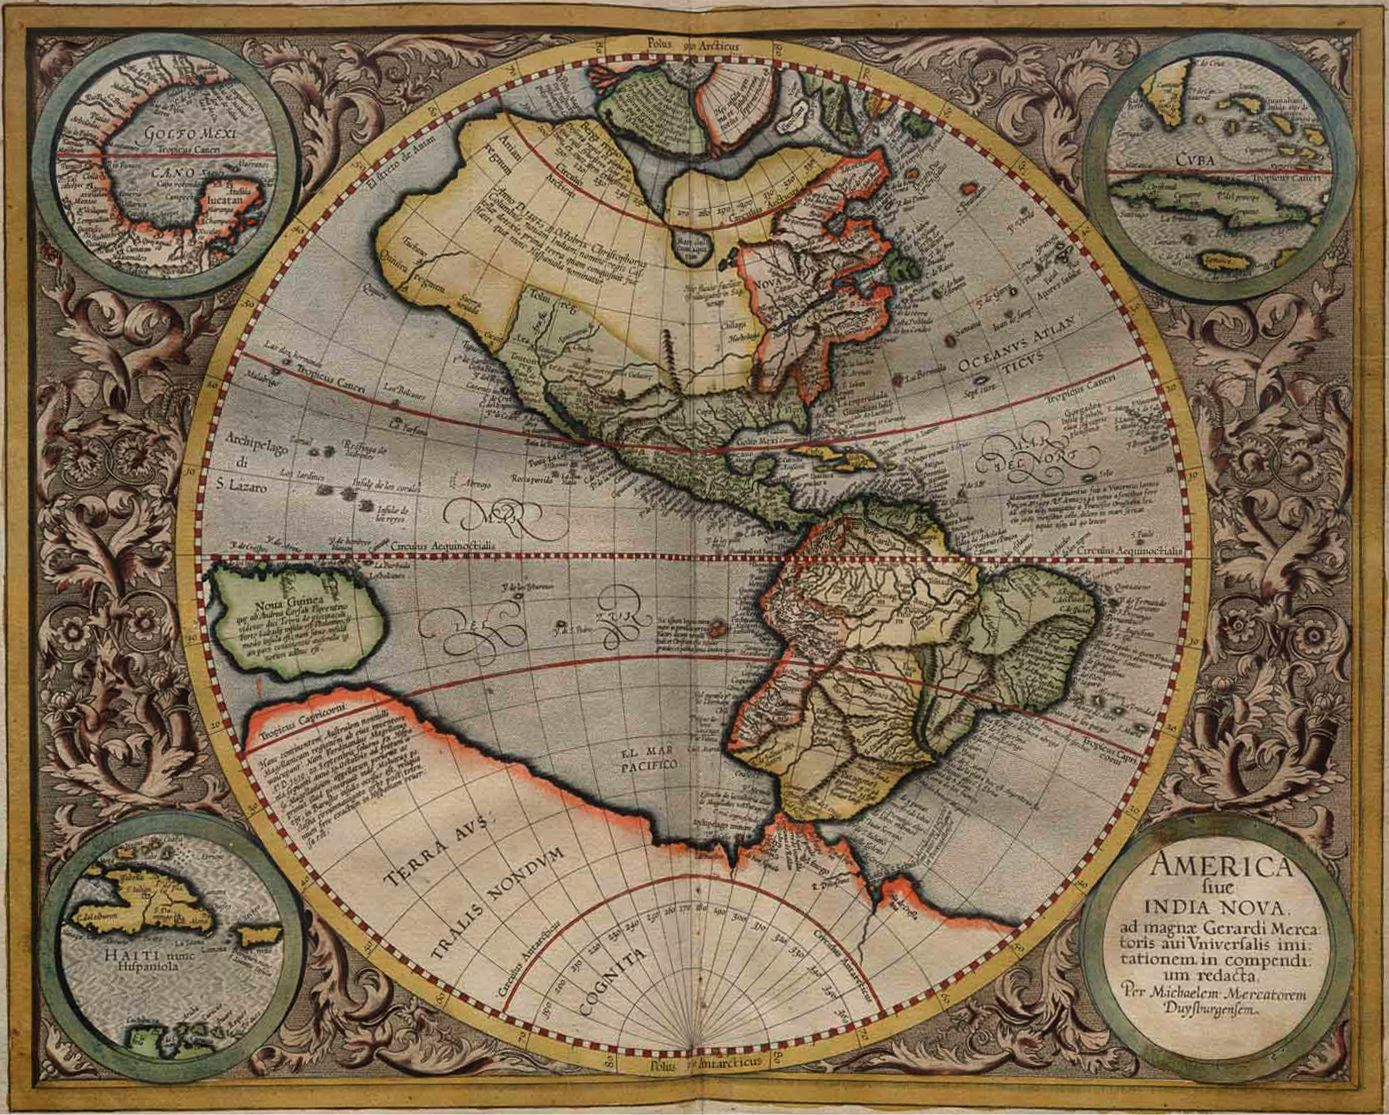 Pin By Dominique Wilson On Stuff To Buy Pinterest - Buy vintage maps